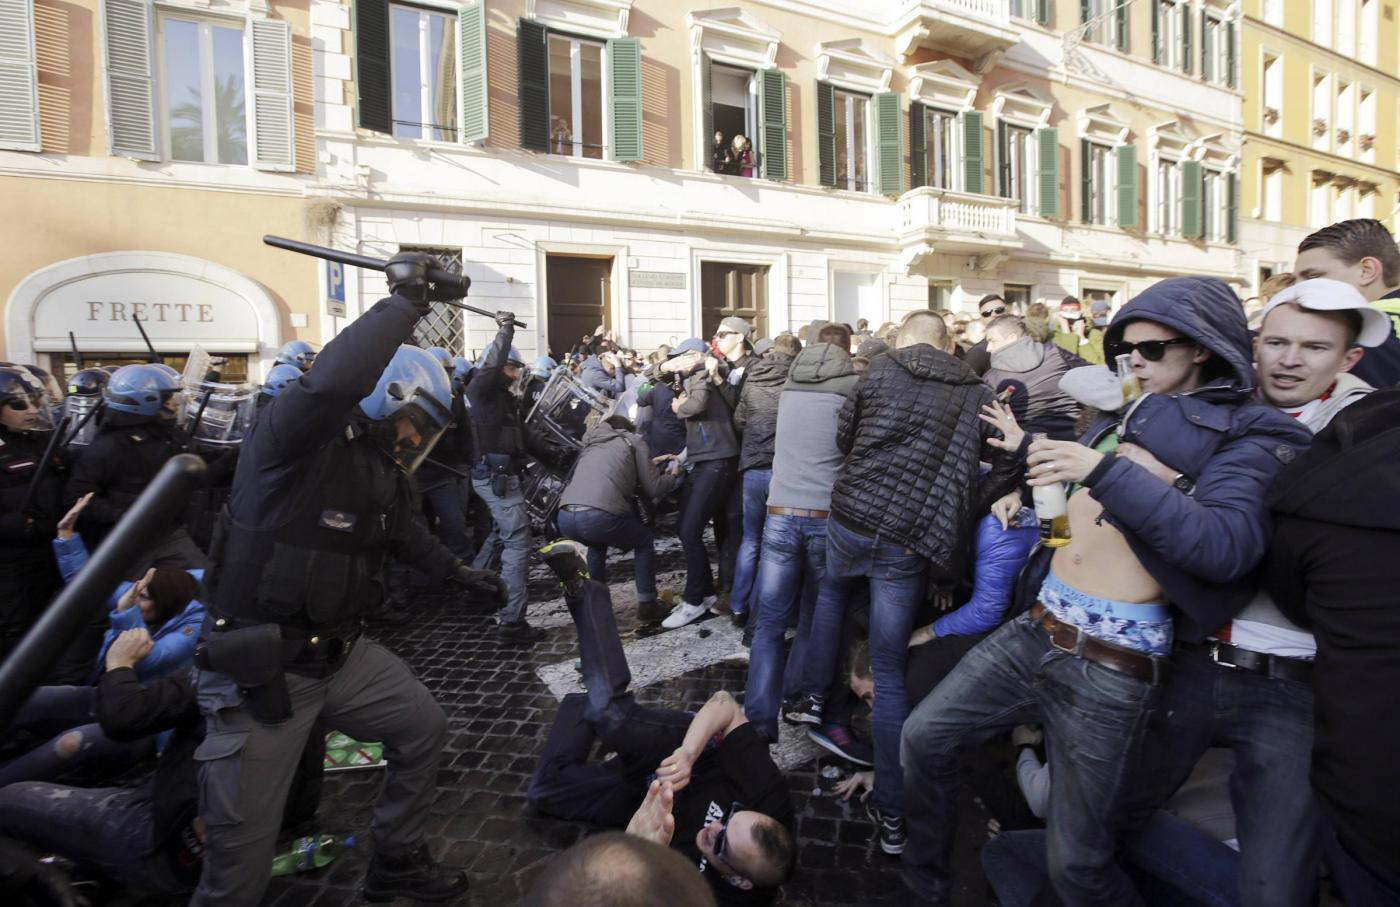 Feyenoord fans clash with police at the Spanish Steps prior to the start of the Europa League soccer match between Roma and Feyenoord in Rome